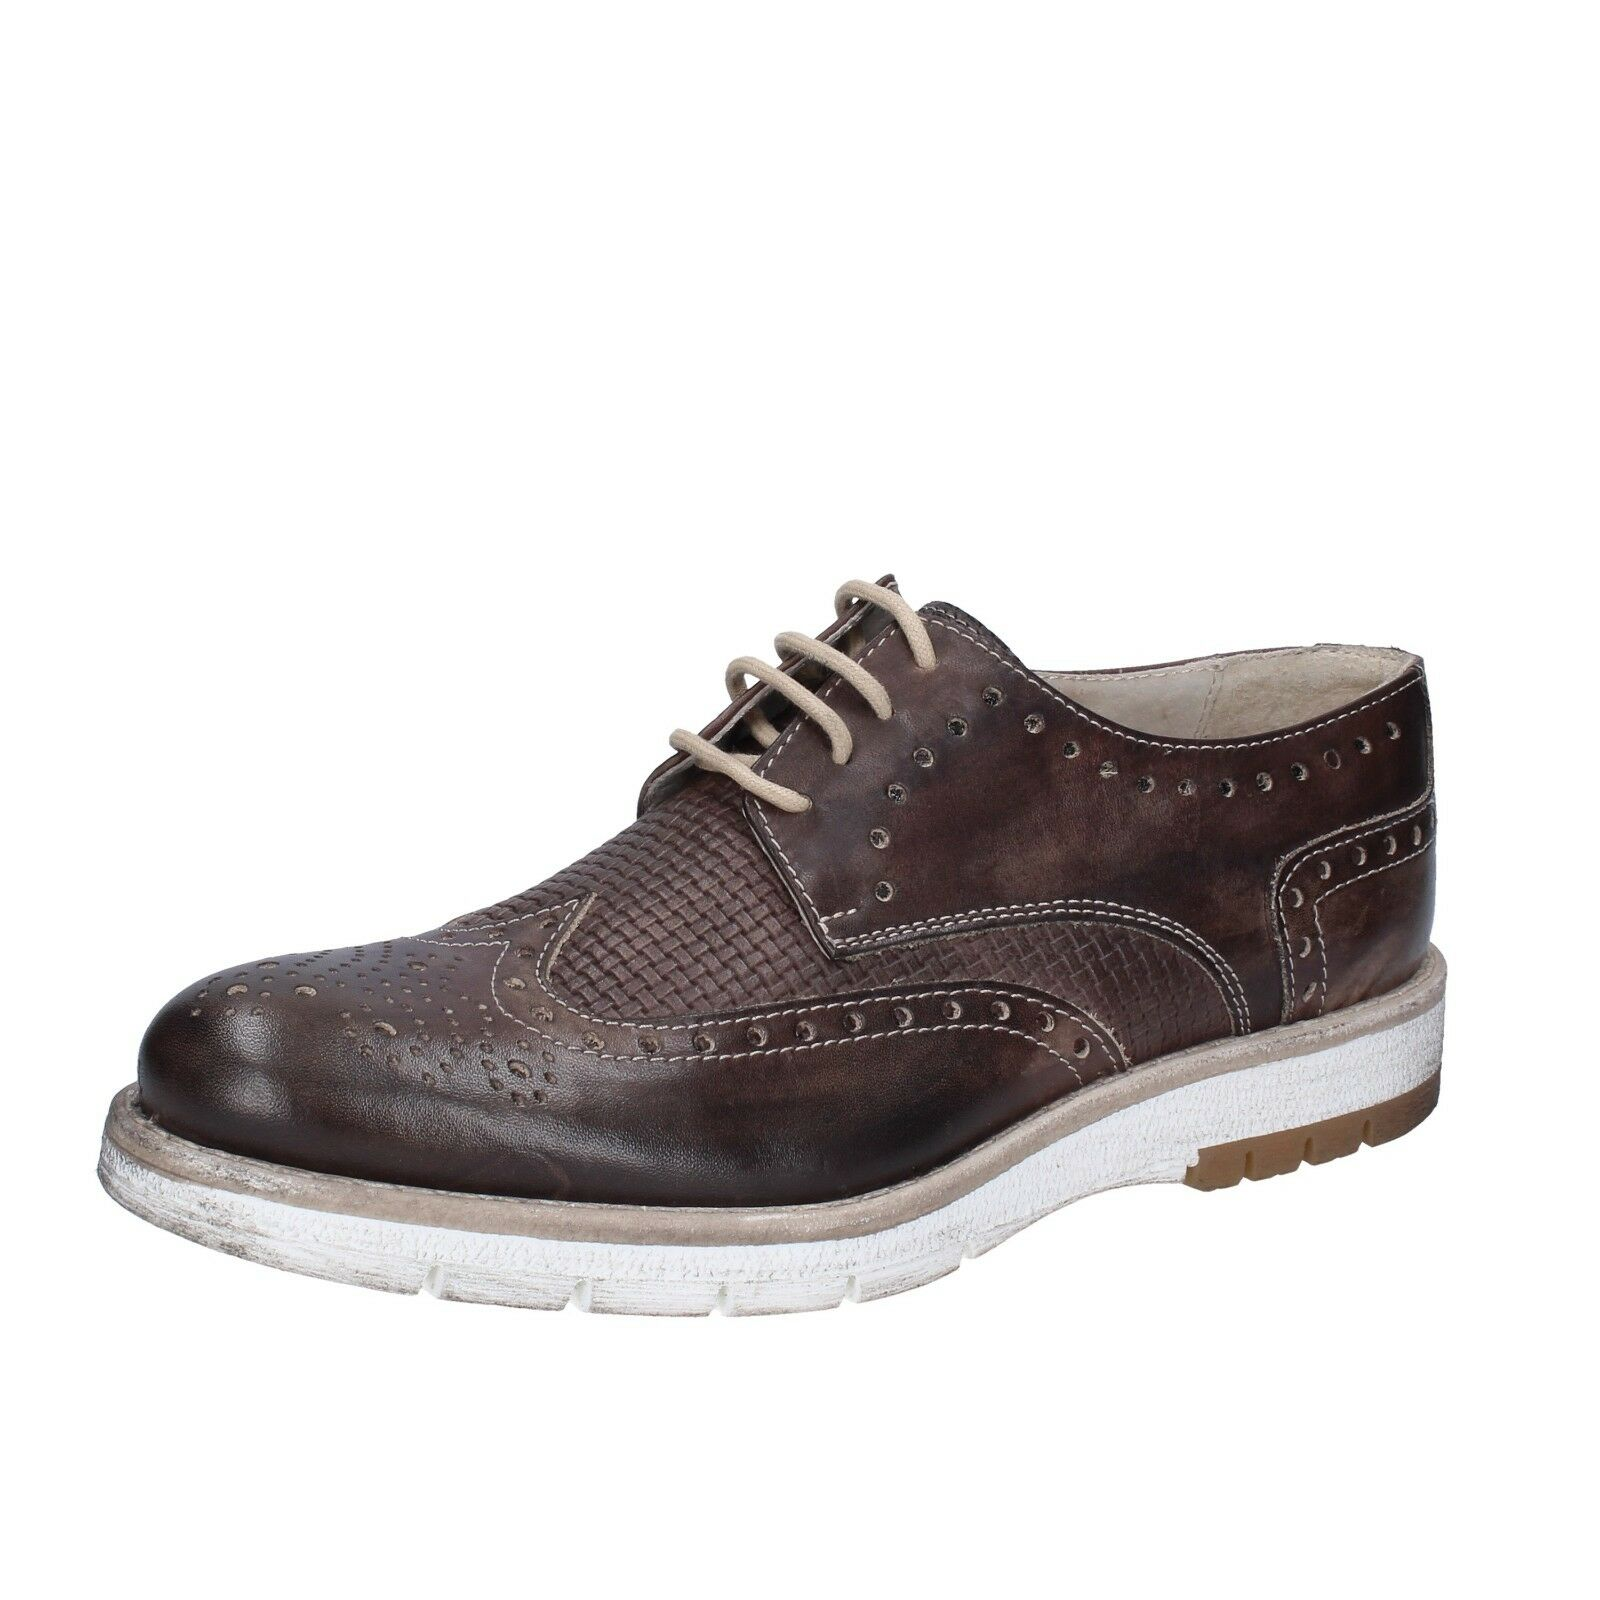 Mens shoes OSSIANI 8 (EU 42) elegant brown leather BT877-42